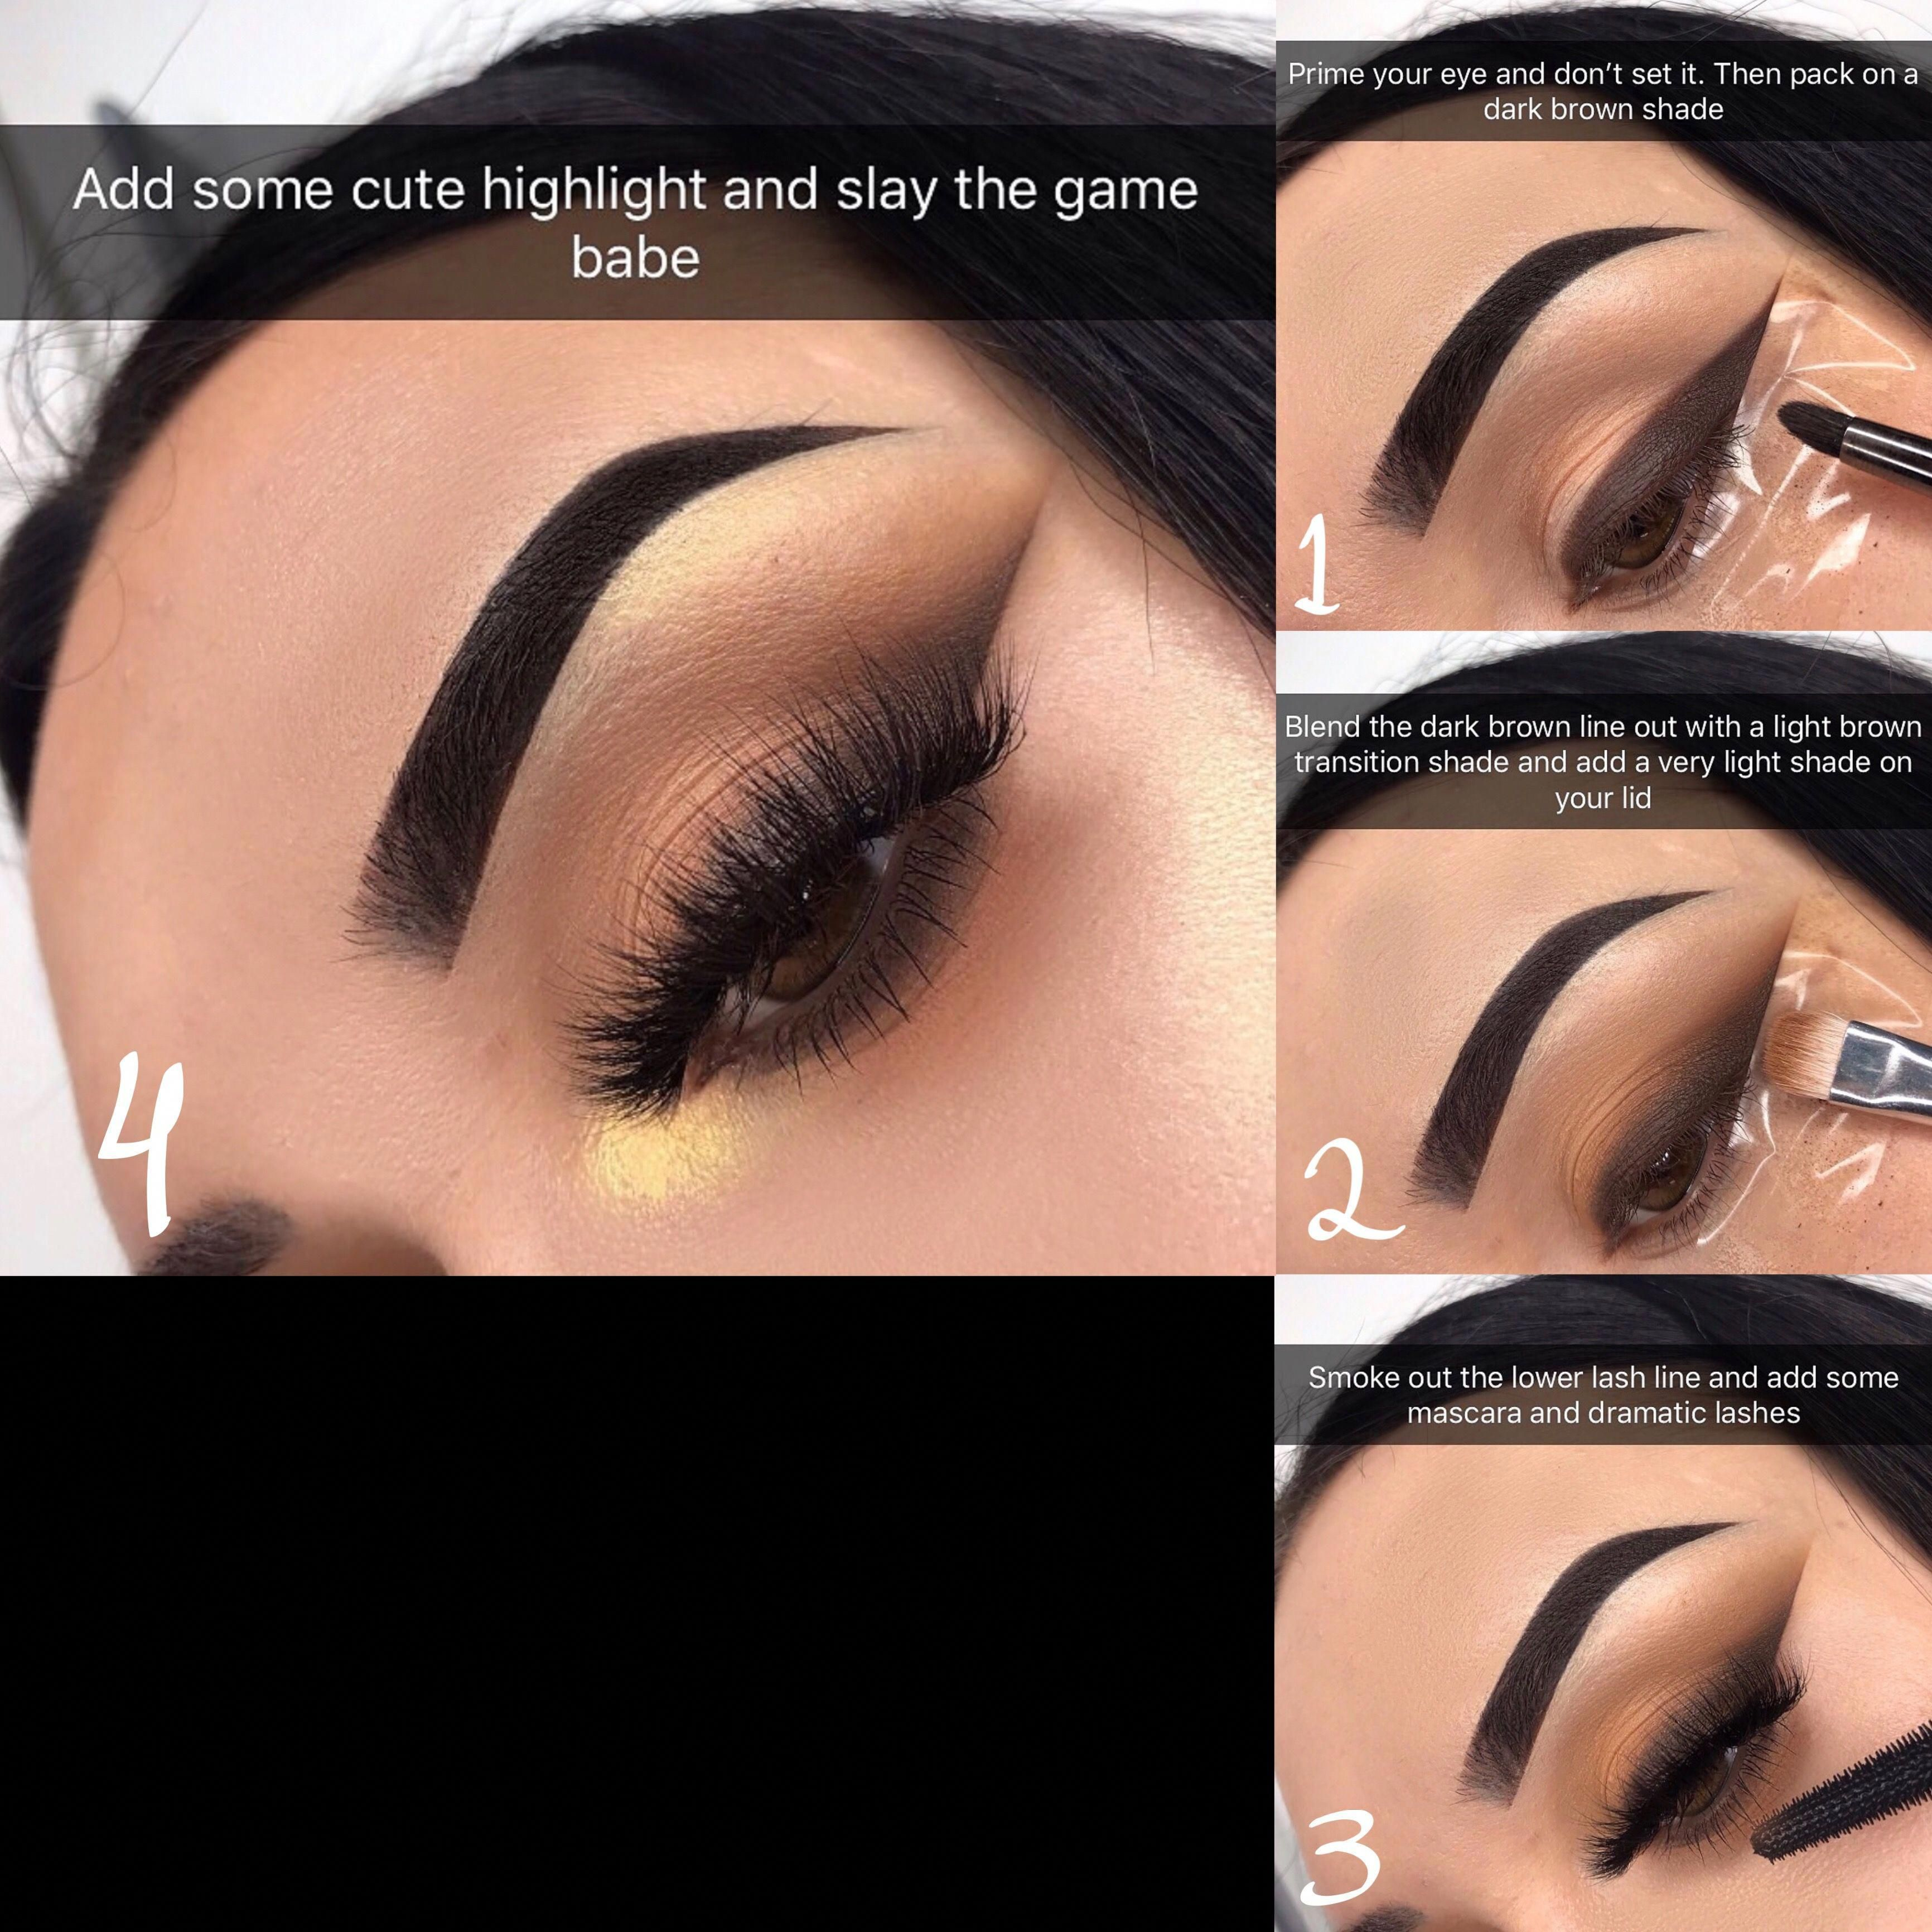 Amazing everyday makeup ideas! #everydaymakeupideas #style #shopping #styles #outfit #pretty #girl #girls #beauty #beautiful #me #cute #stylish #photooftheday #swag #dress #shoes #diy #design #fashion #Makeup